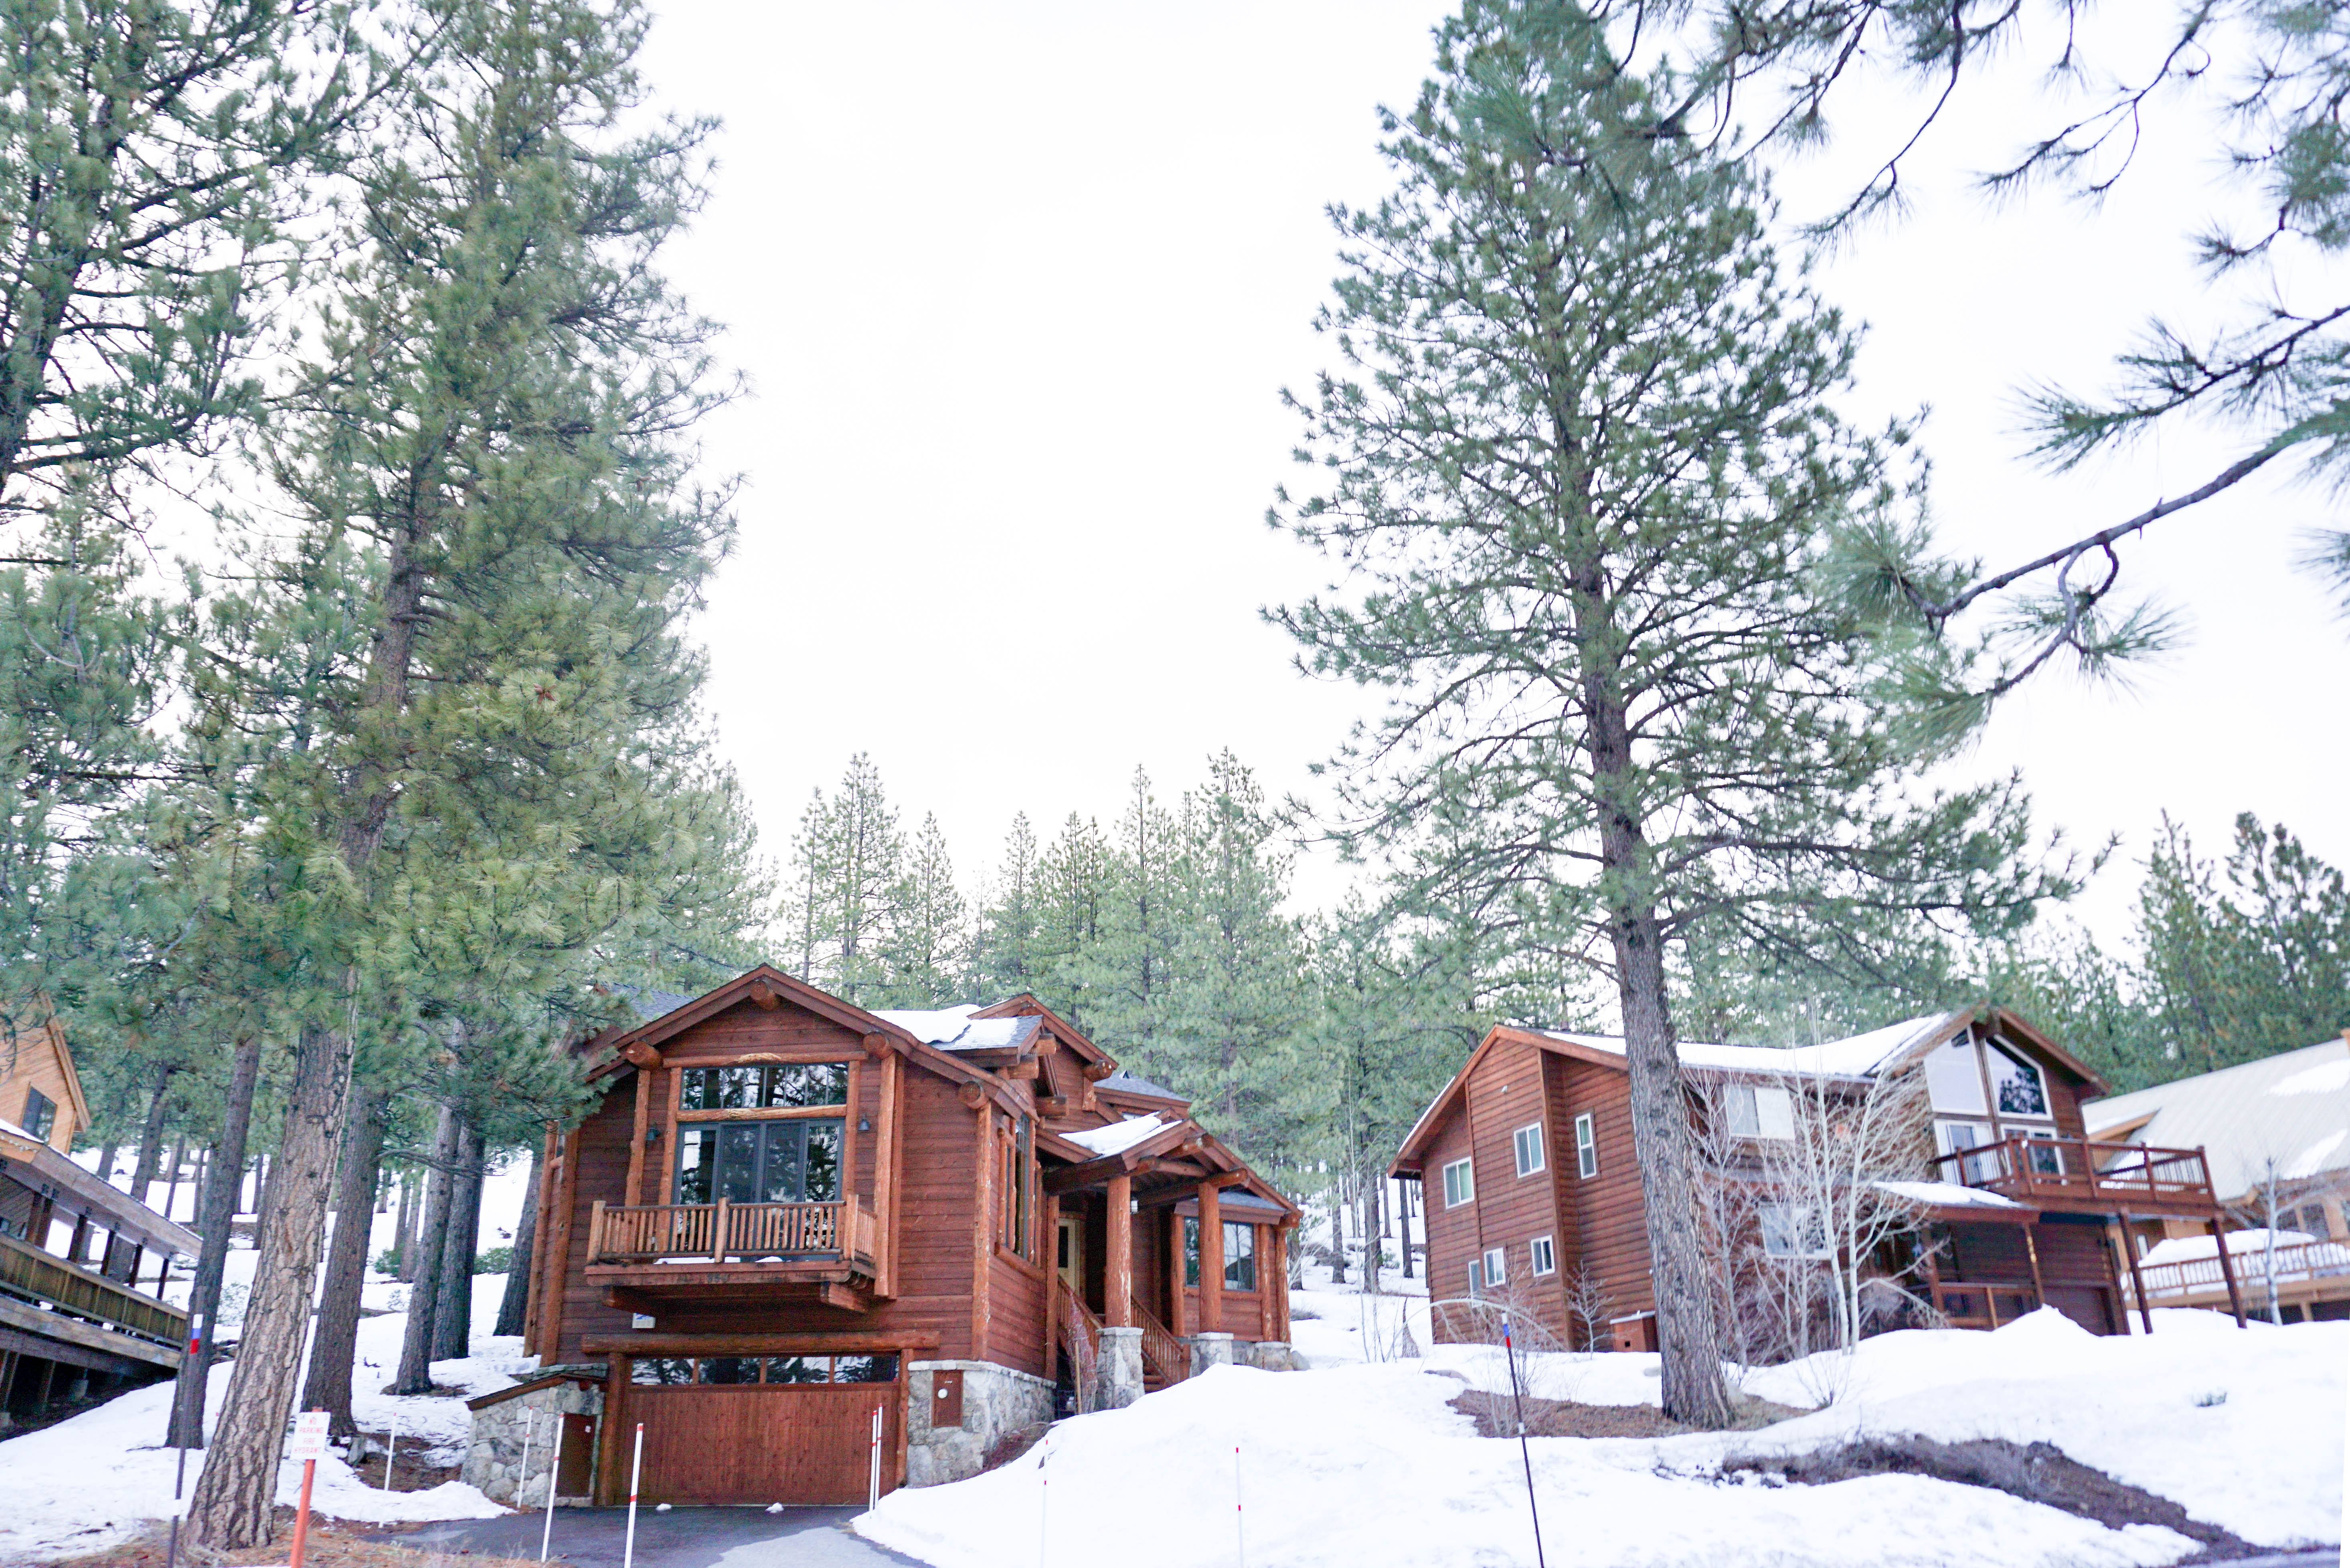 Lake tahoe winter wonderland her travel edit for Lake tahoe winter cabin